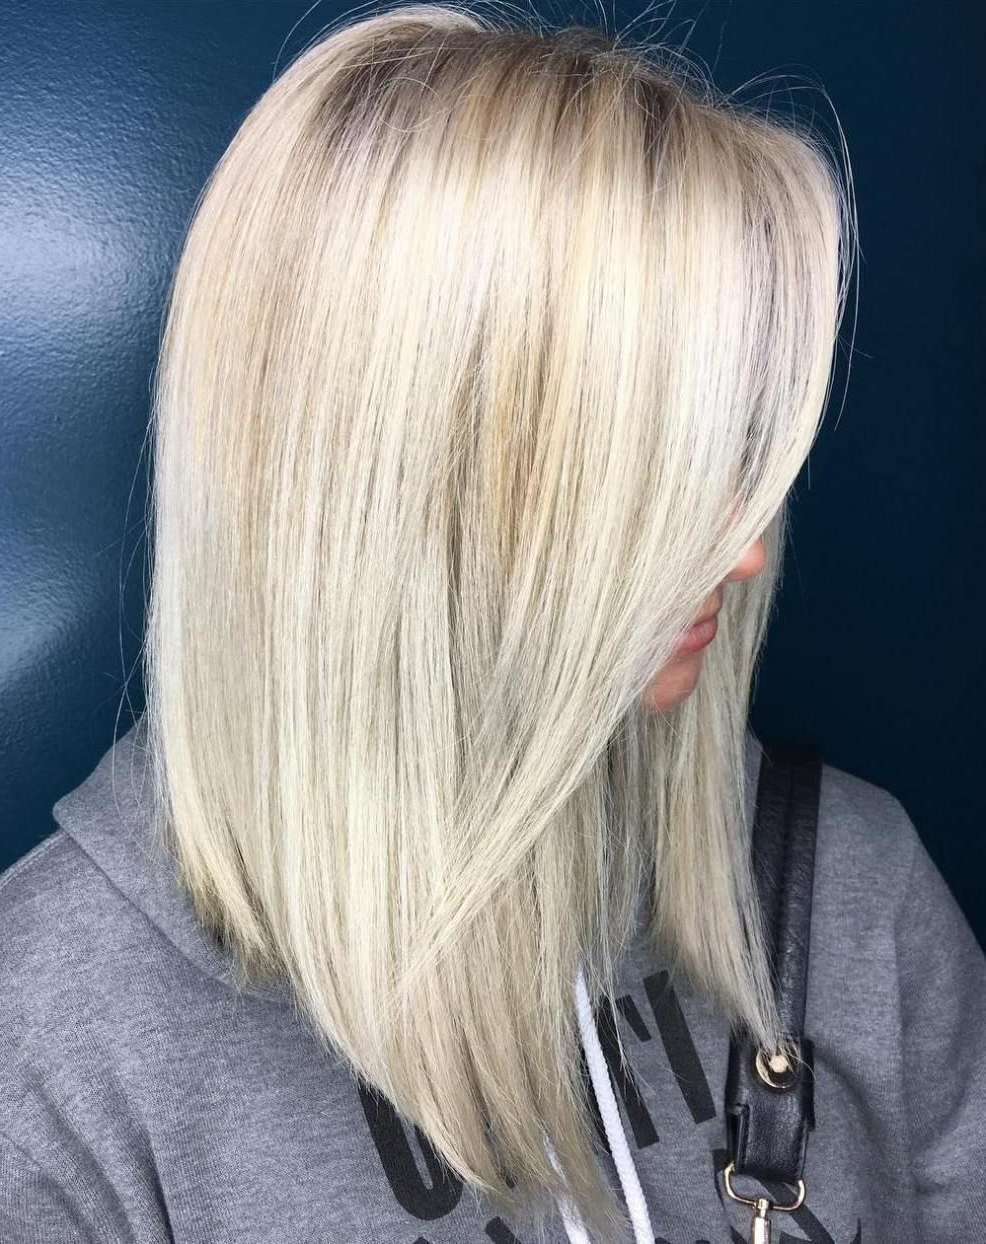 40 Styles With Medium Blonde Hair For Major Inspiration (View 2 of 20)